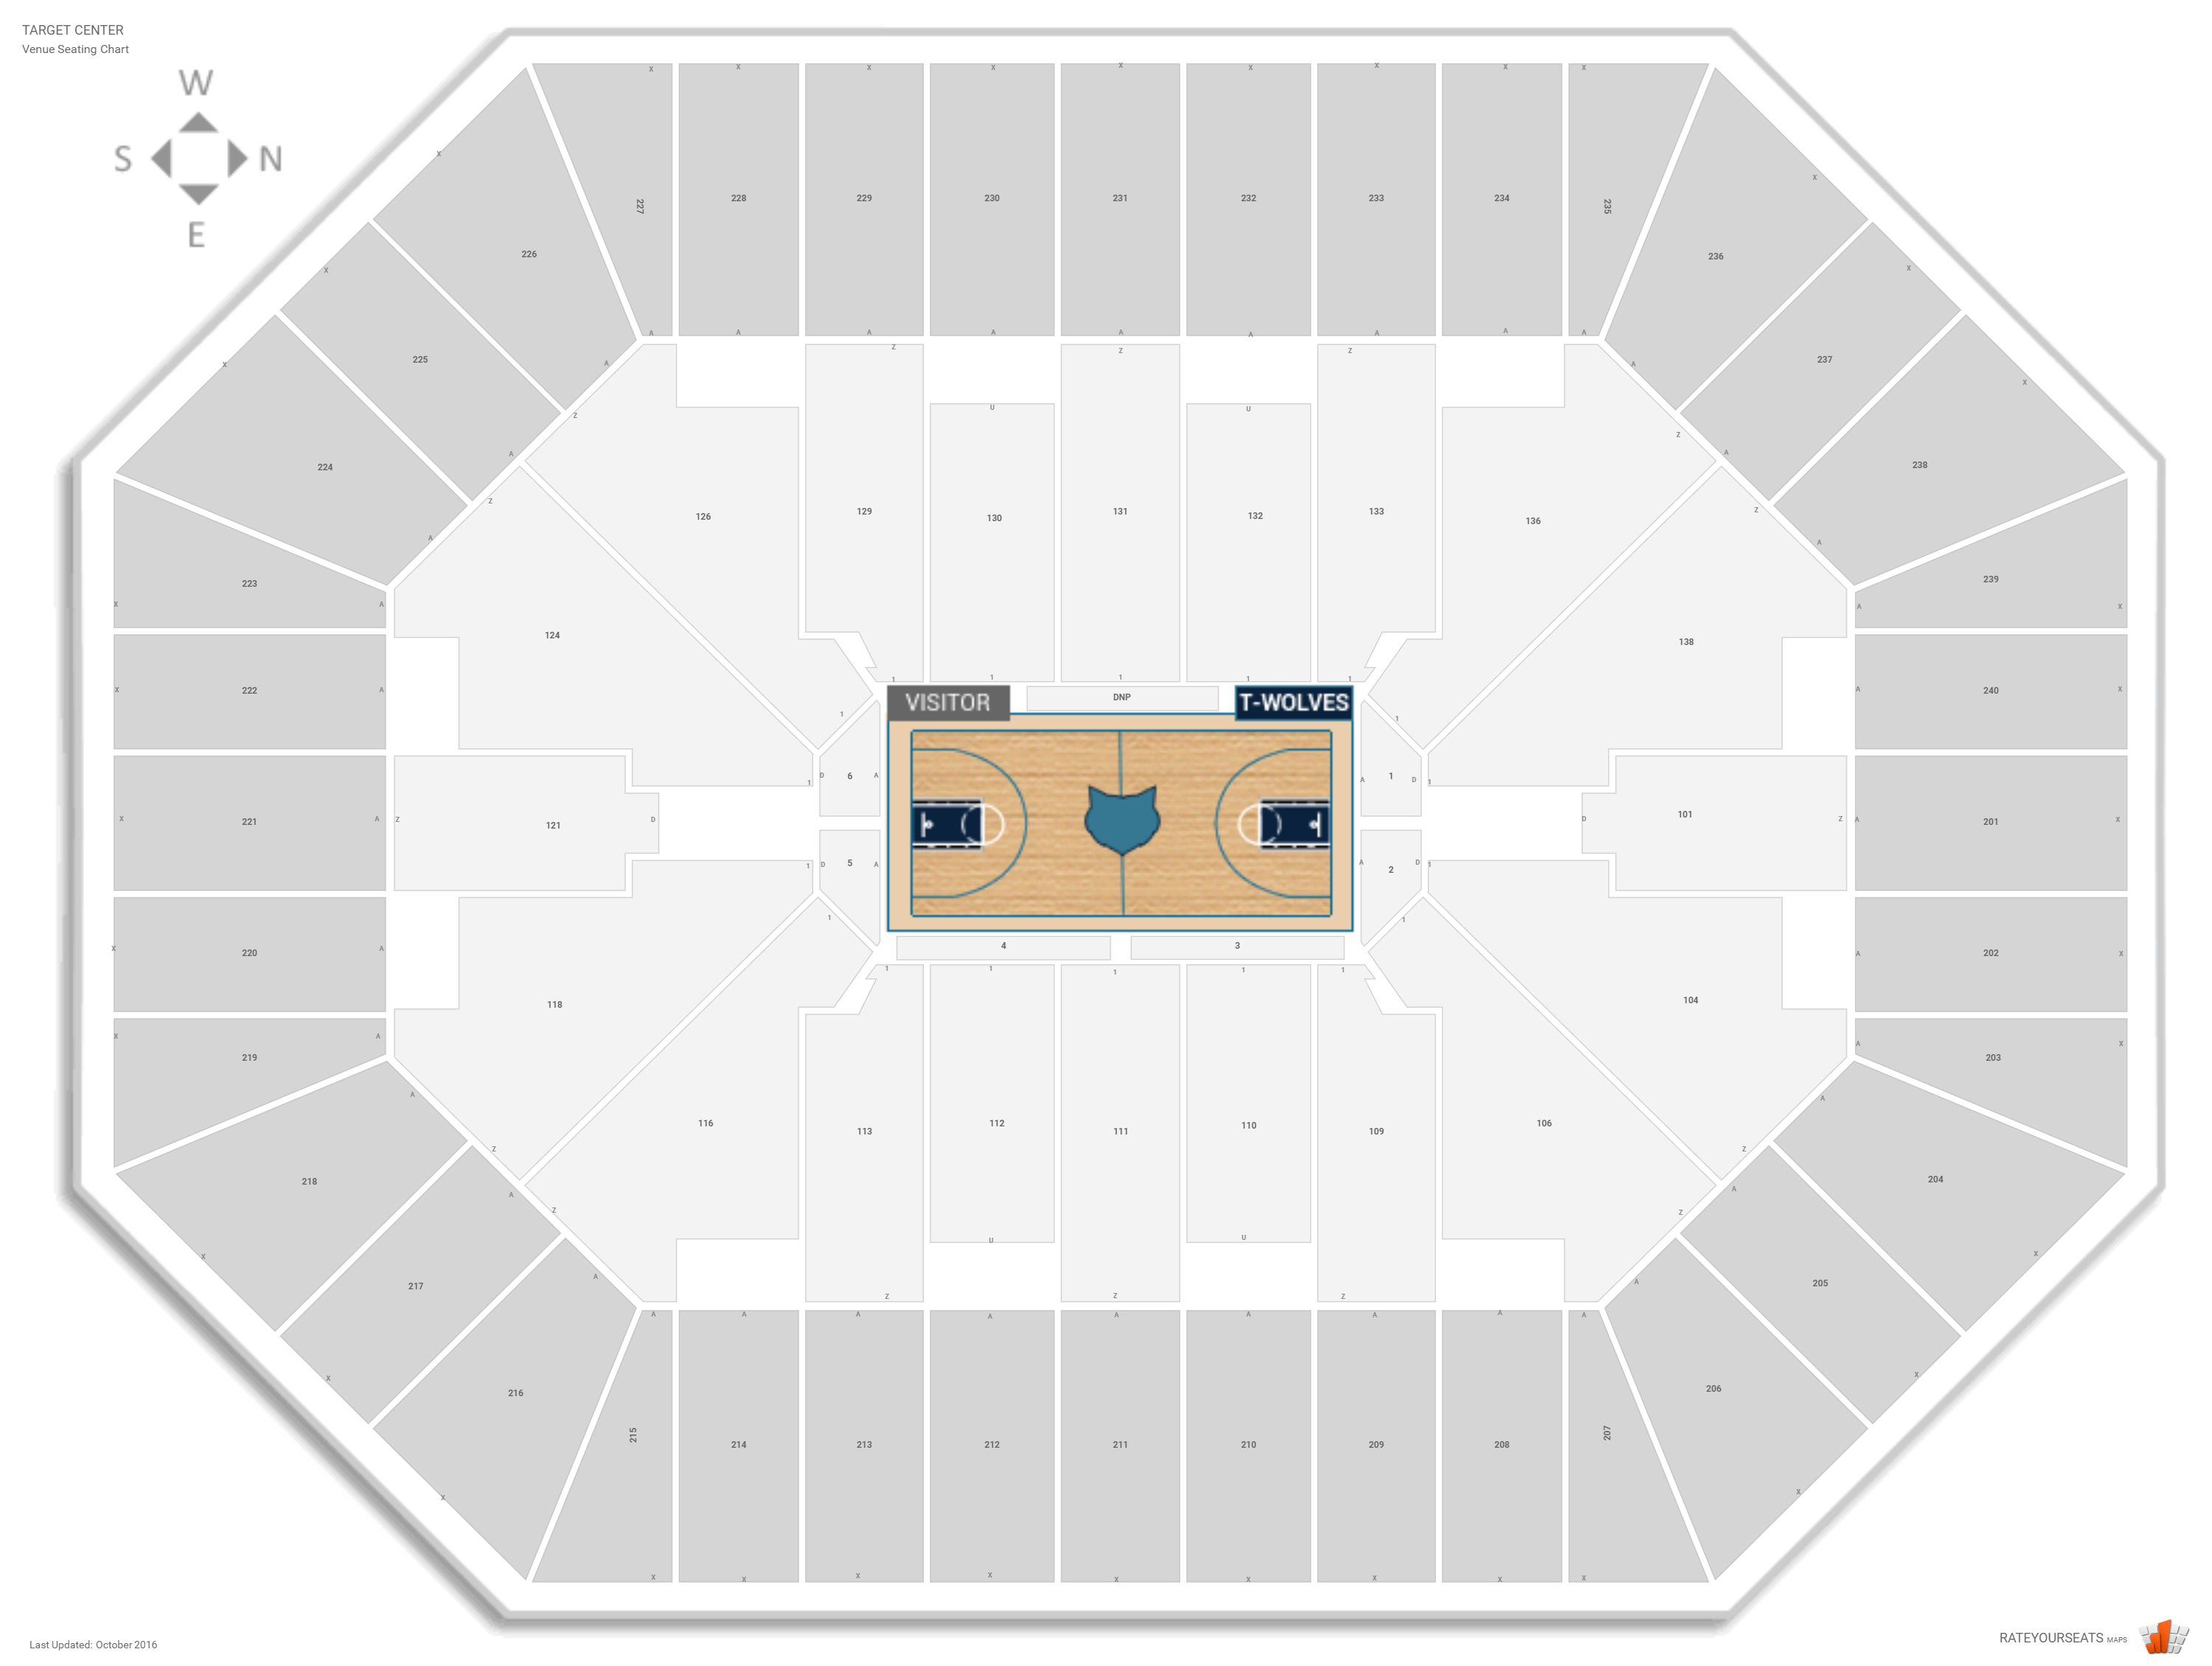 Target Center Seating Chart With Row Numbers